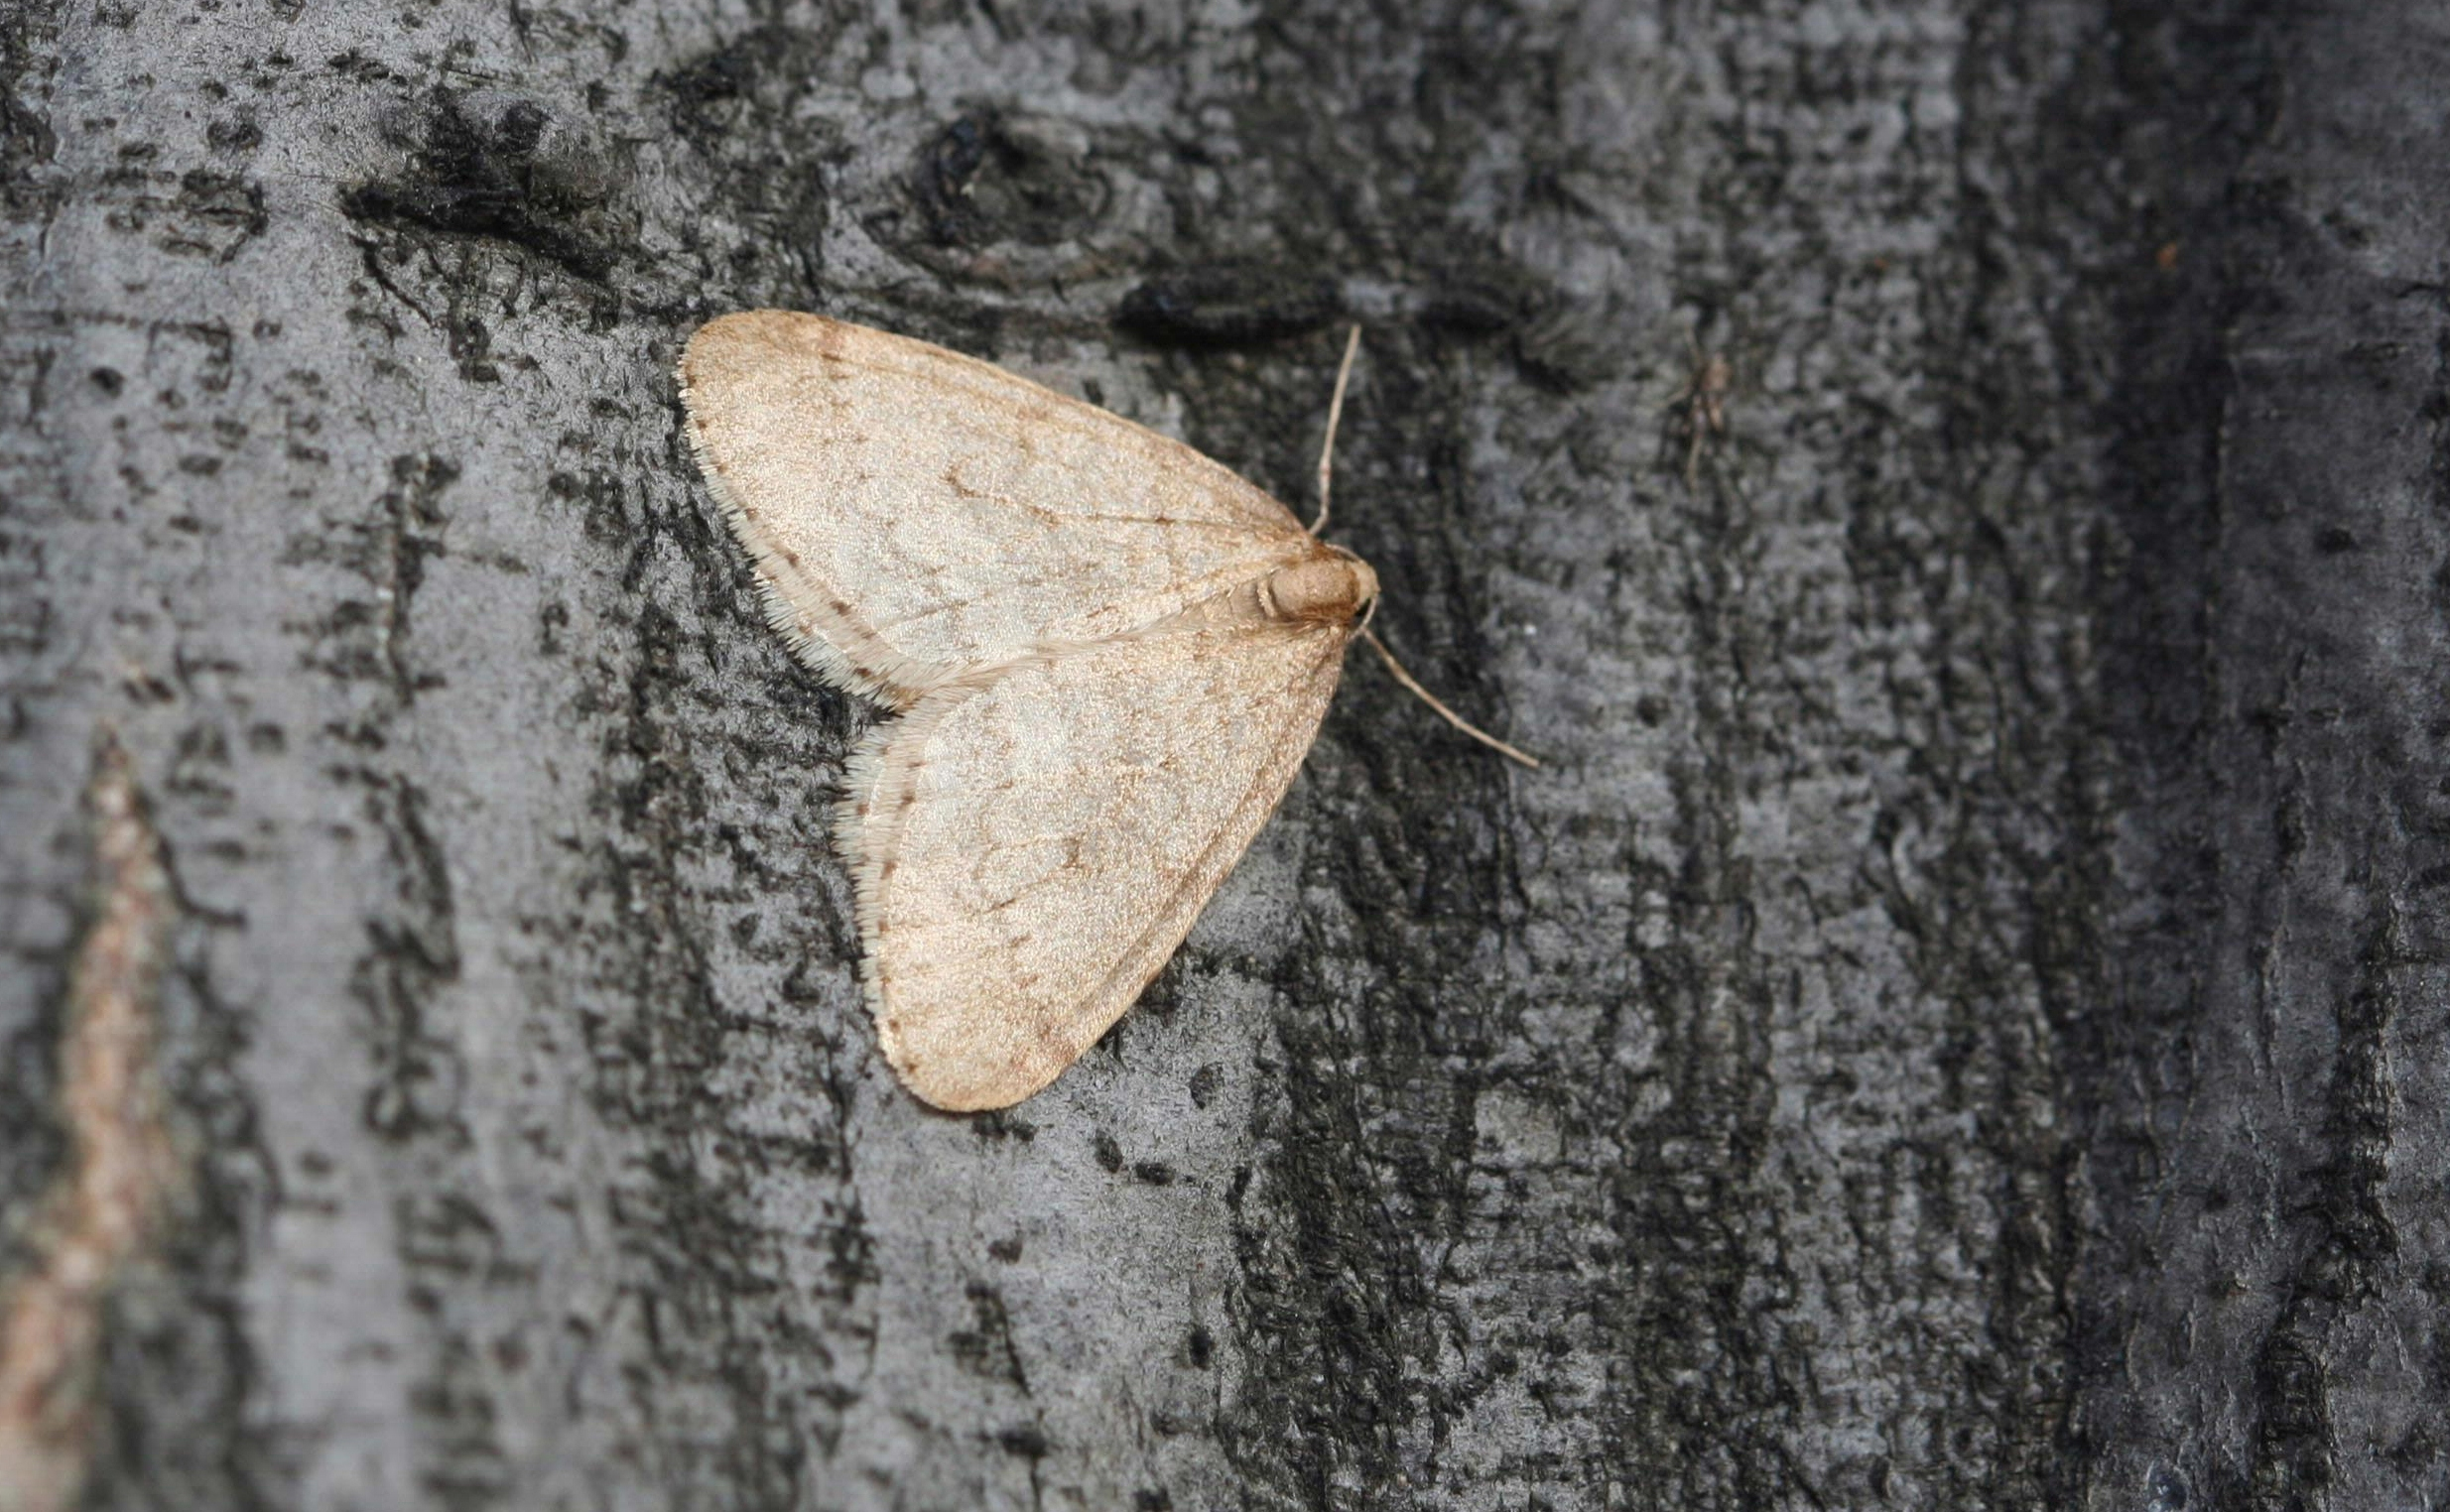 Winter moth adults emerge to mate in late fall through early winter.